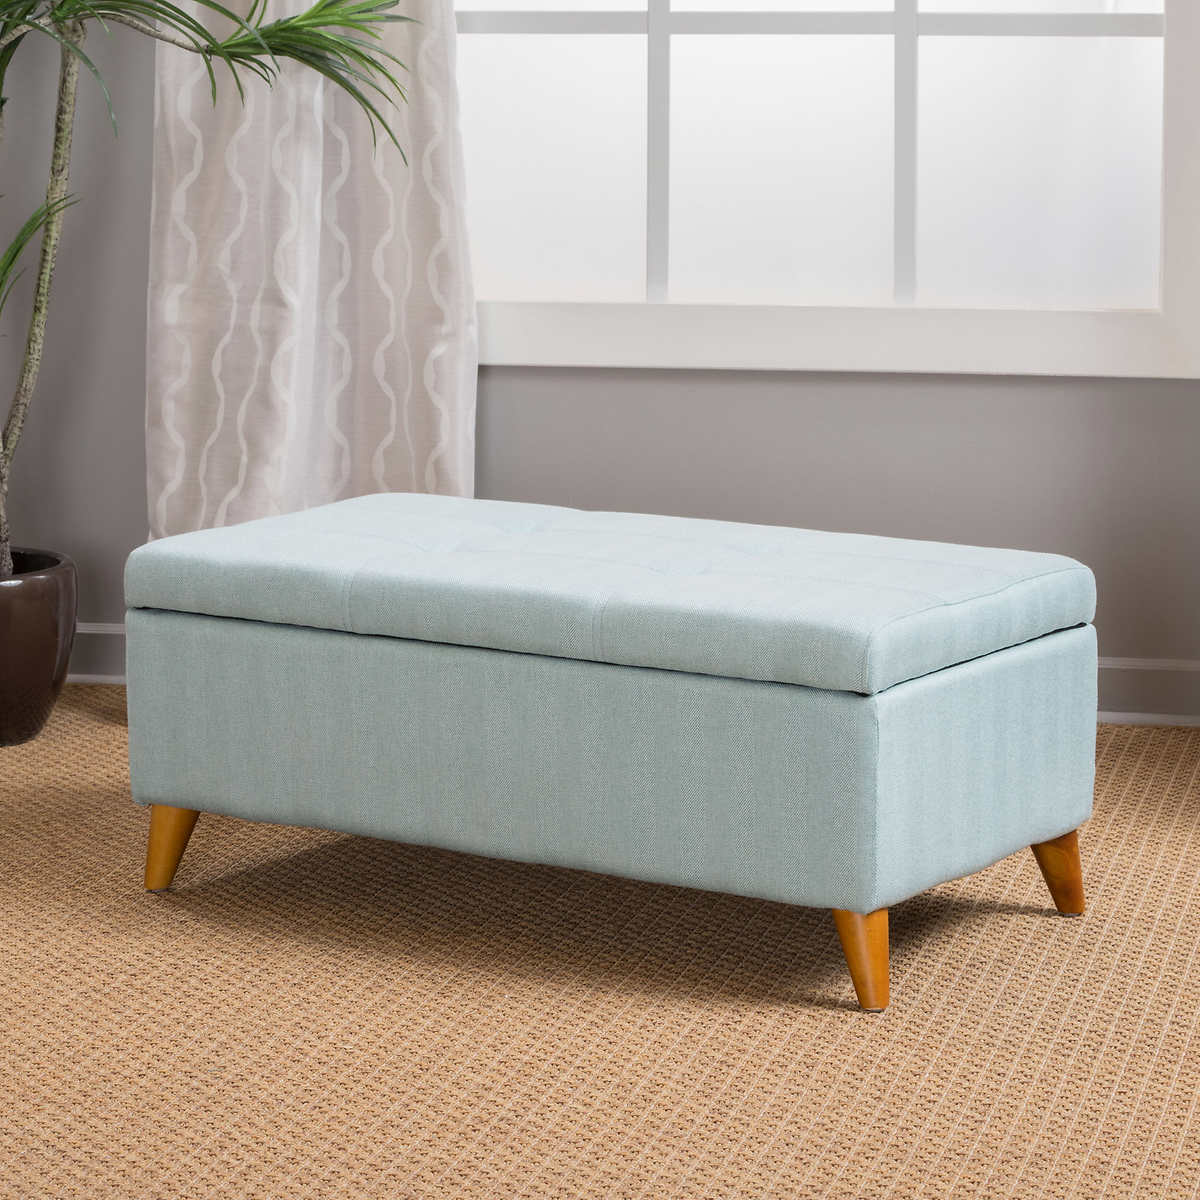 ottomans  benches  costco - maddox storage bench light blue